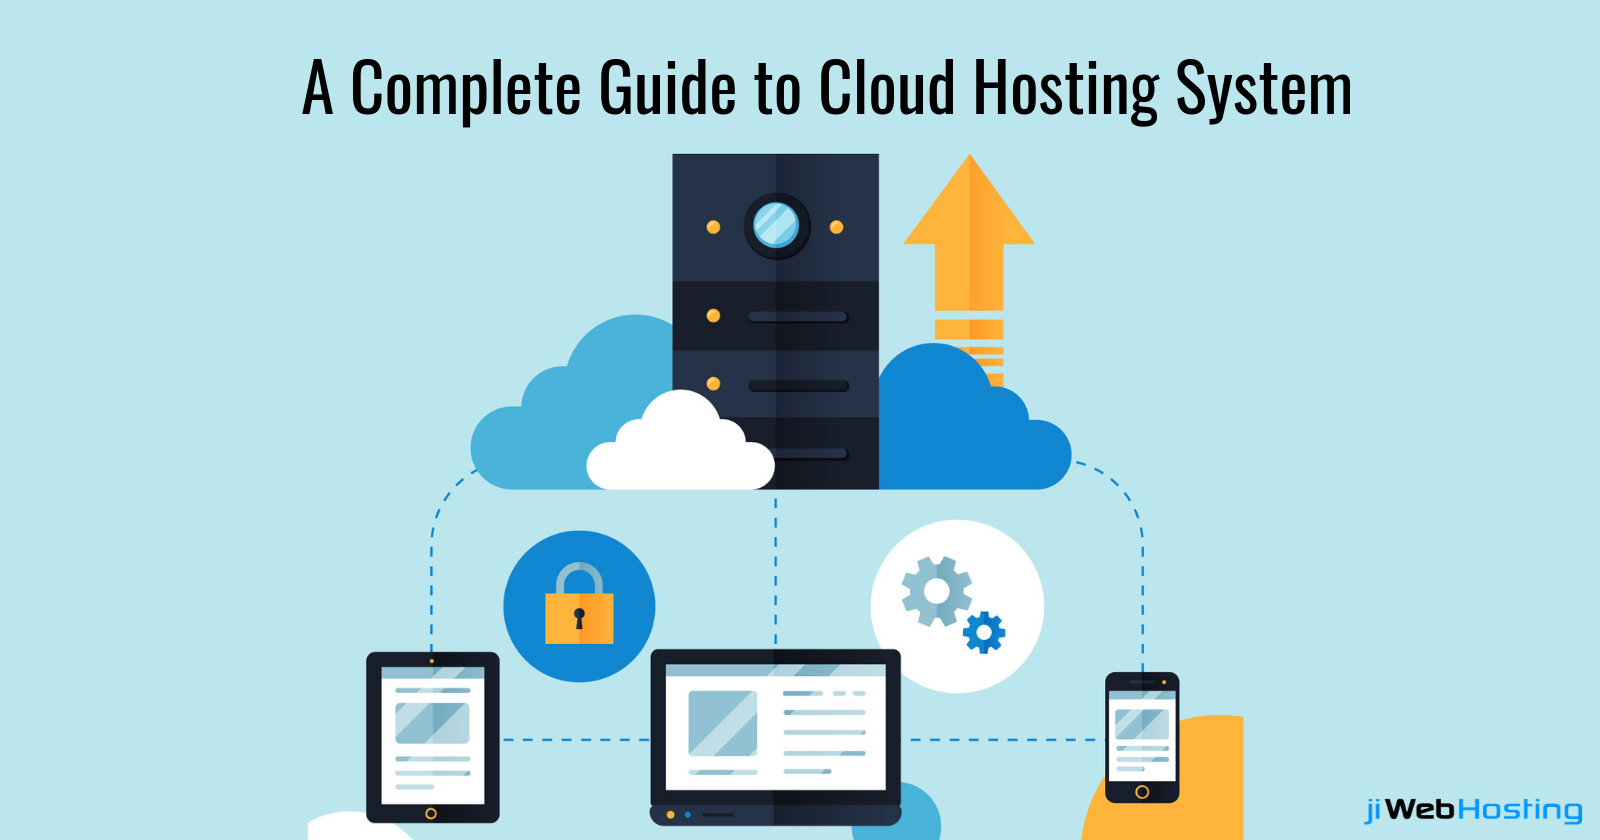 How Does Cloud Hosting Work?